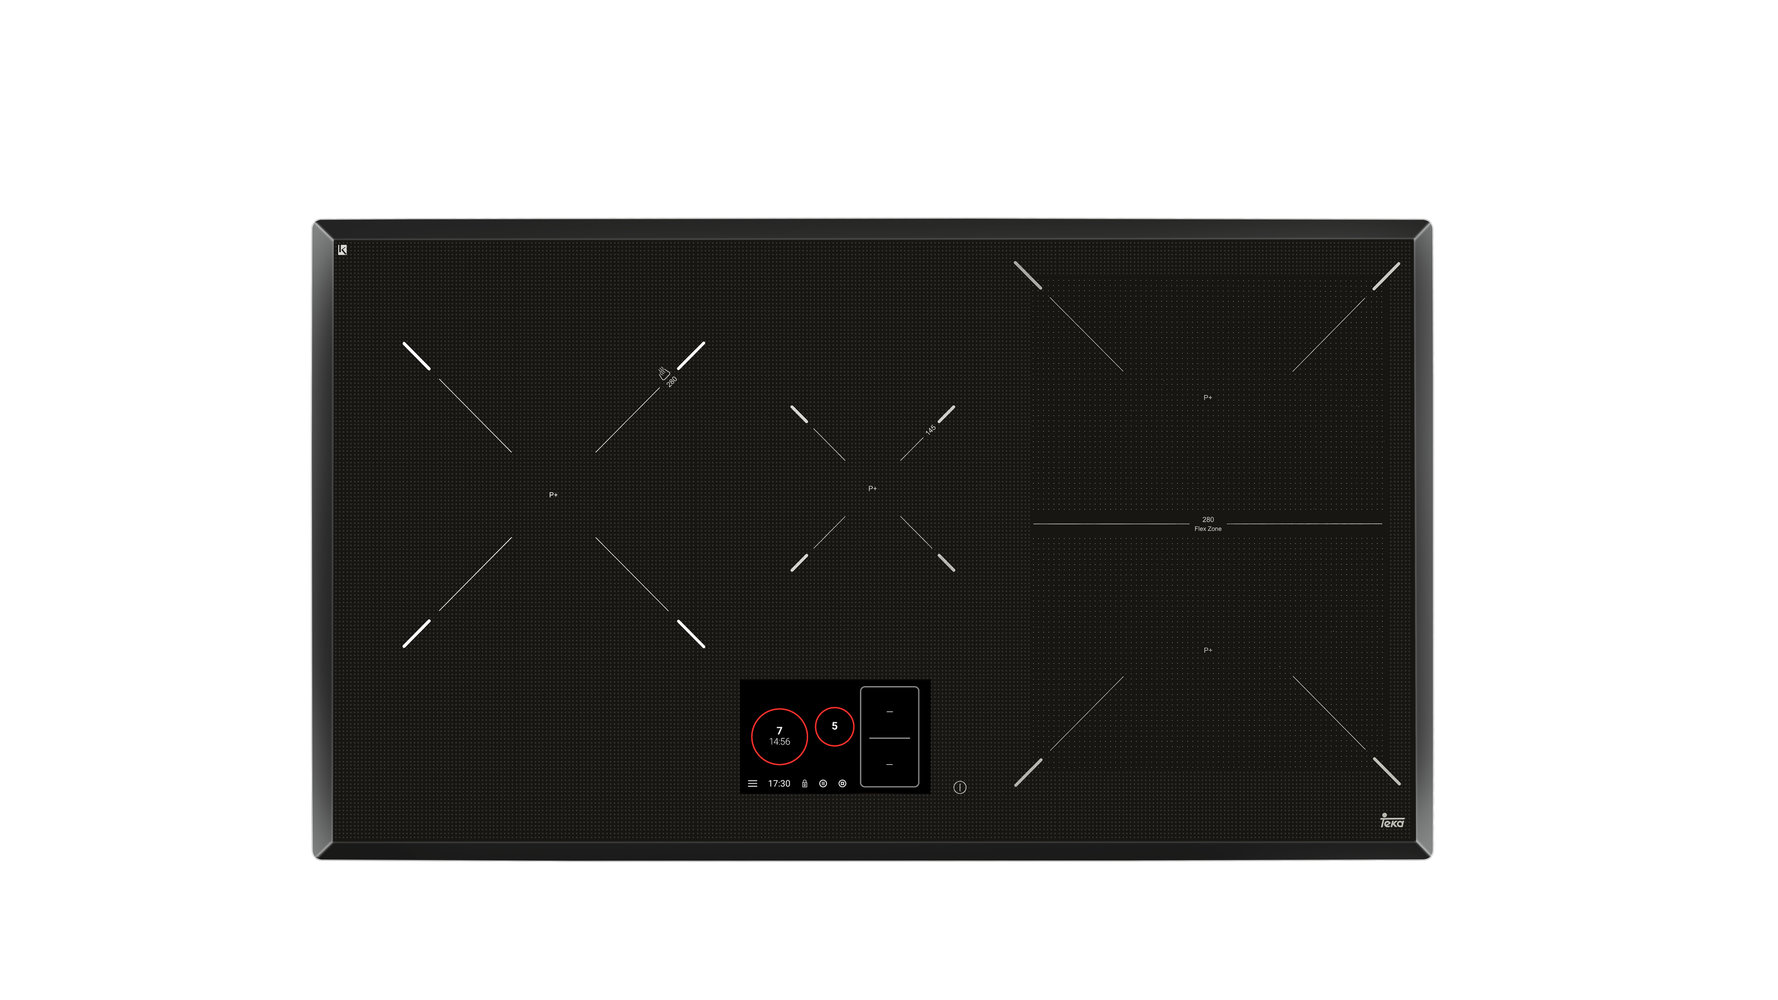 Induction hob with 4 cooking zones and touch control in 80 cm